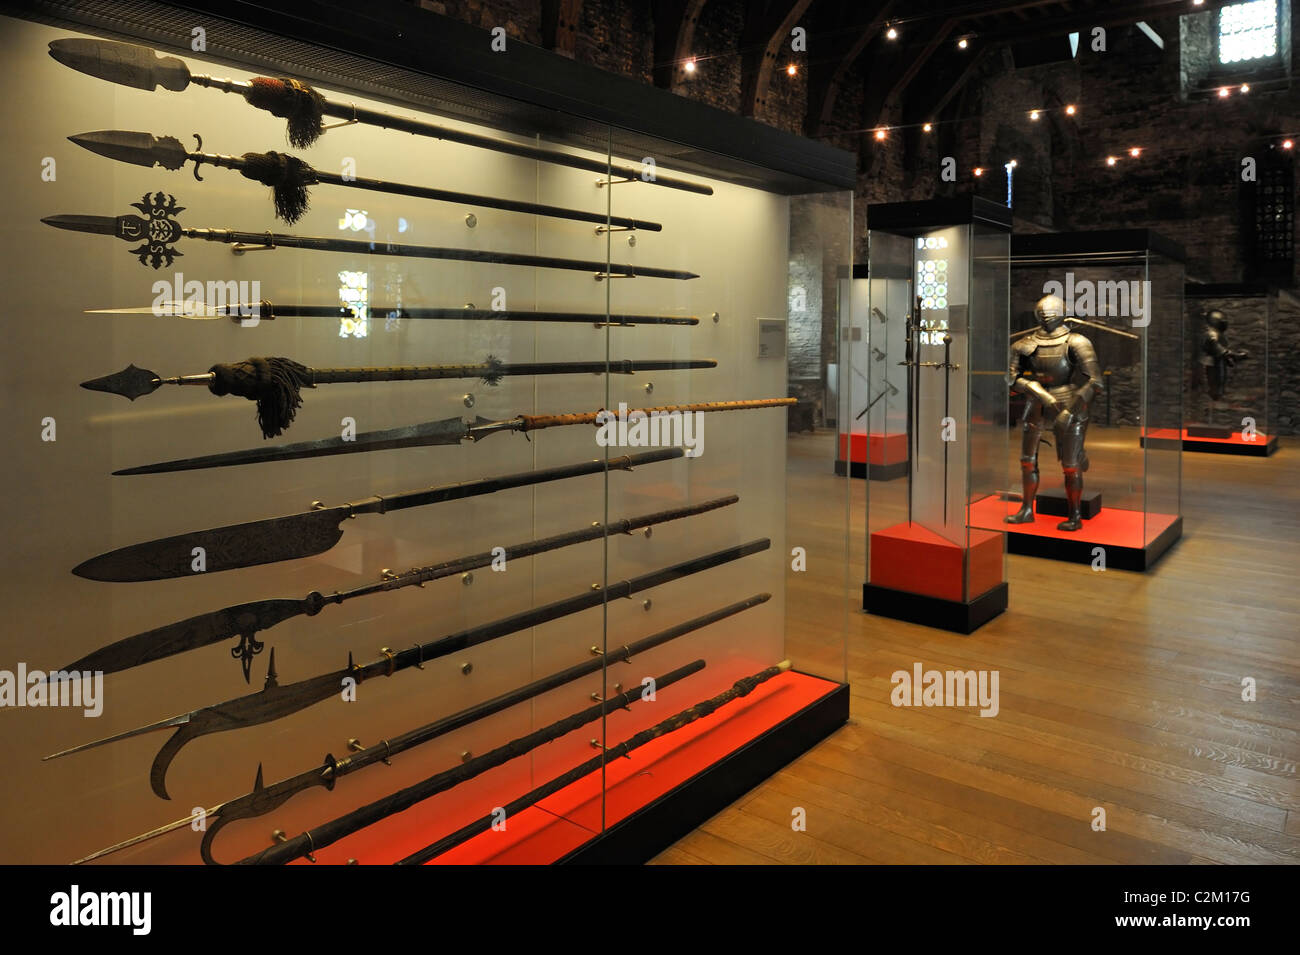 Mediaeval armoury at the Gravensteen / Castle of the Counts in Ghent, Belgium - Stock Image